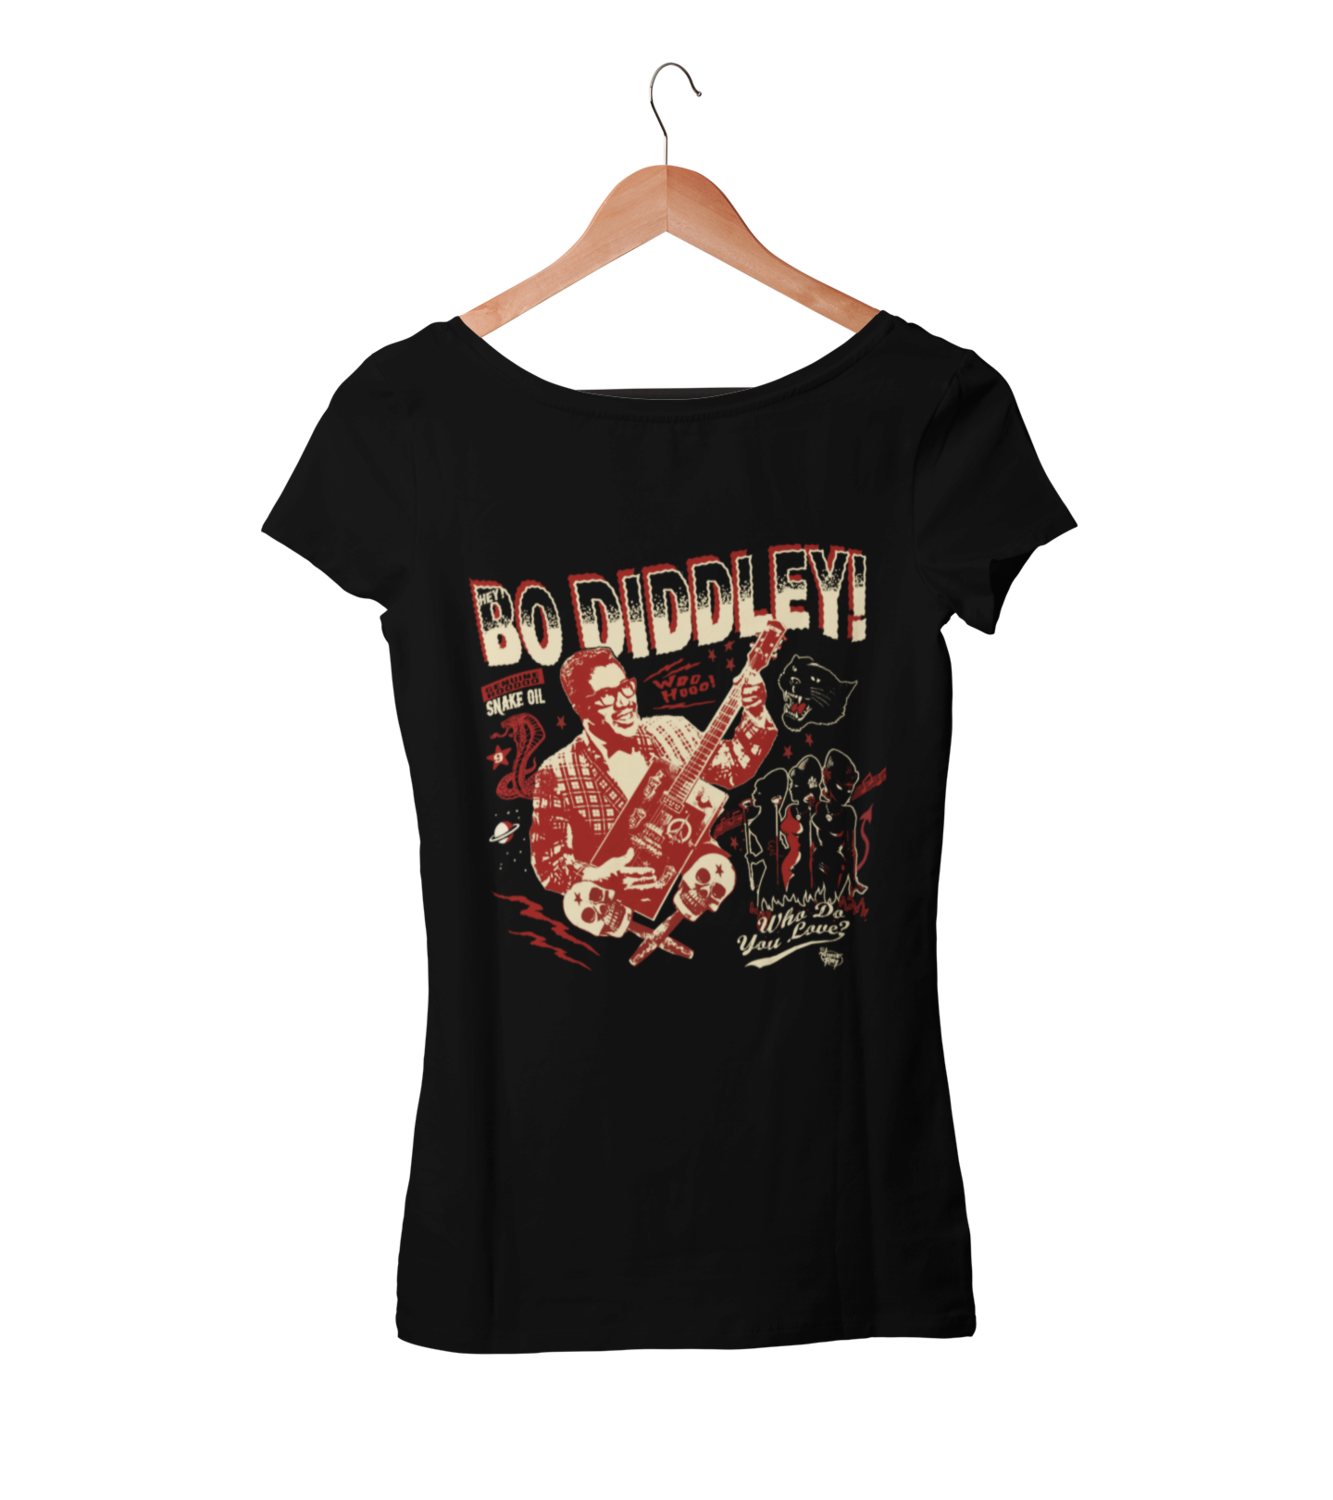 BO DIDDLEY T-SHIRT WOMAN by VINCE RAY